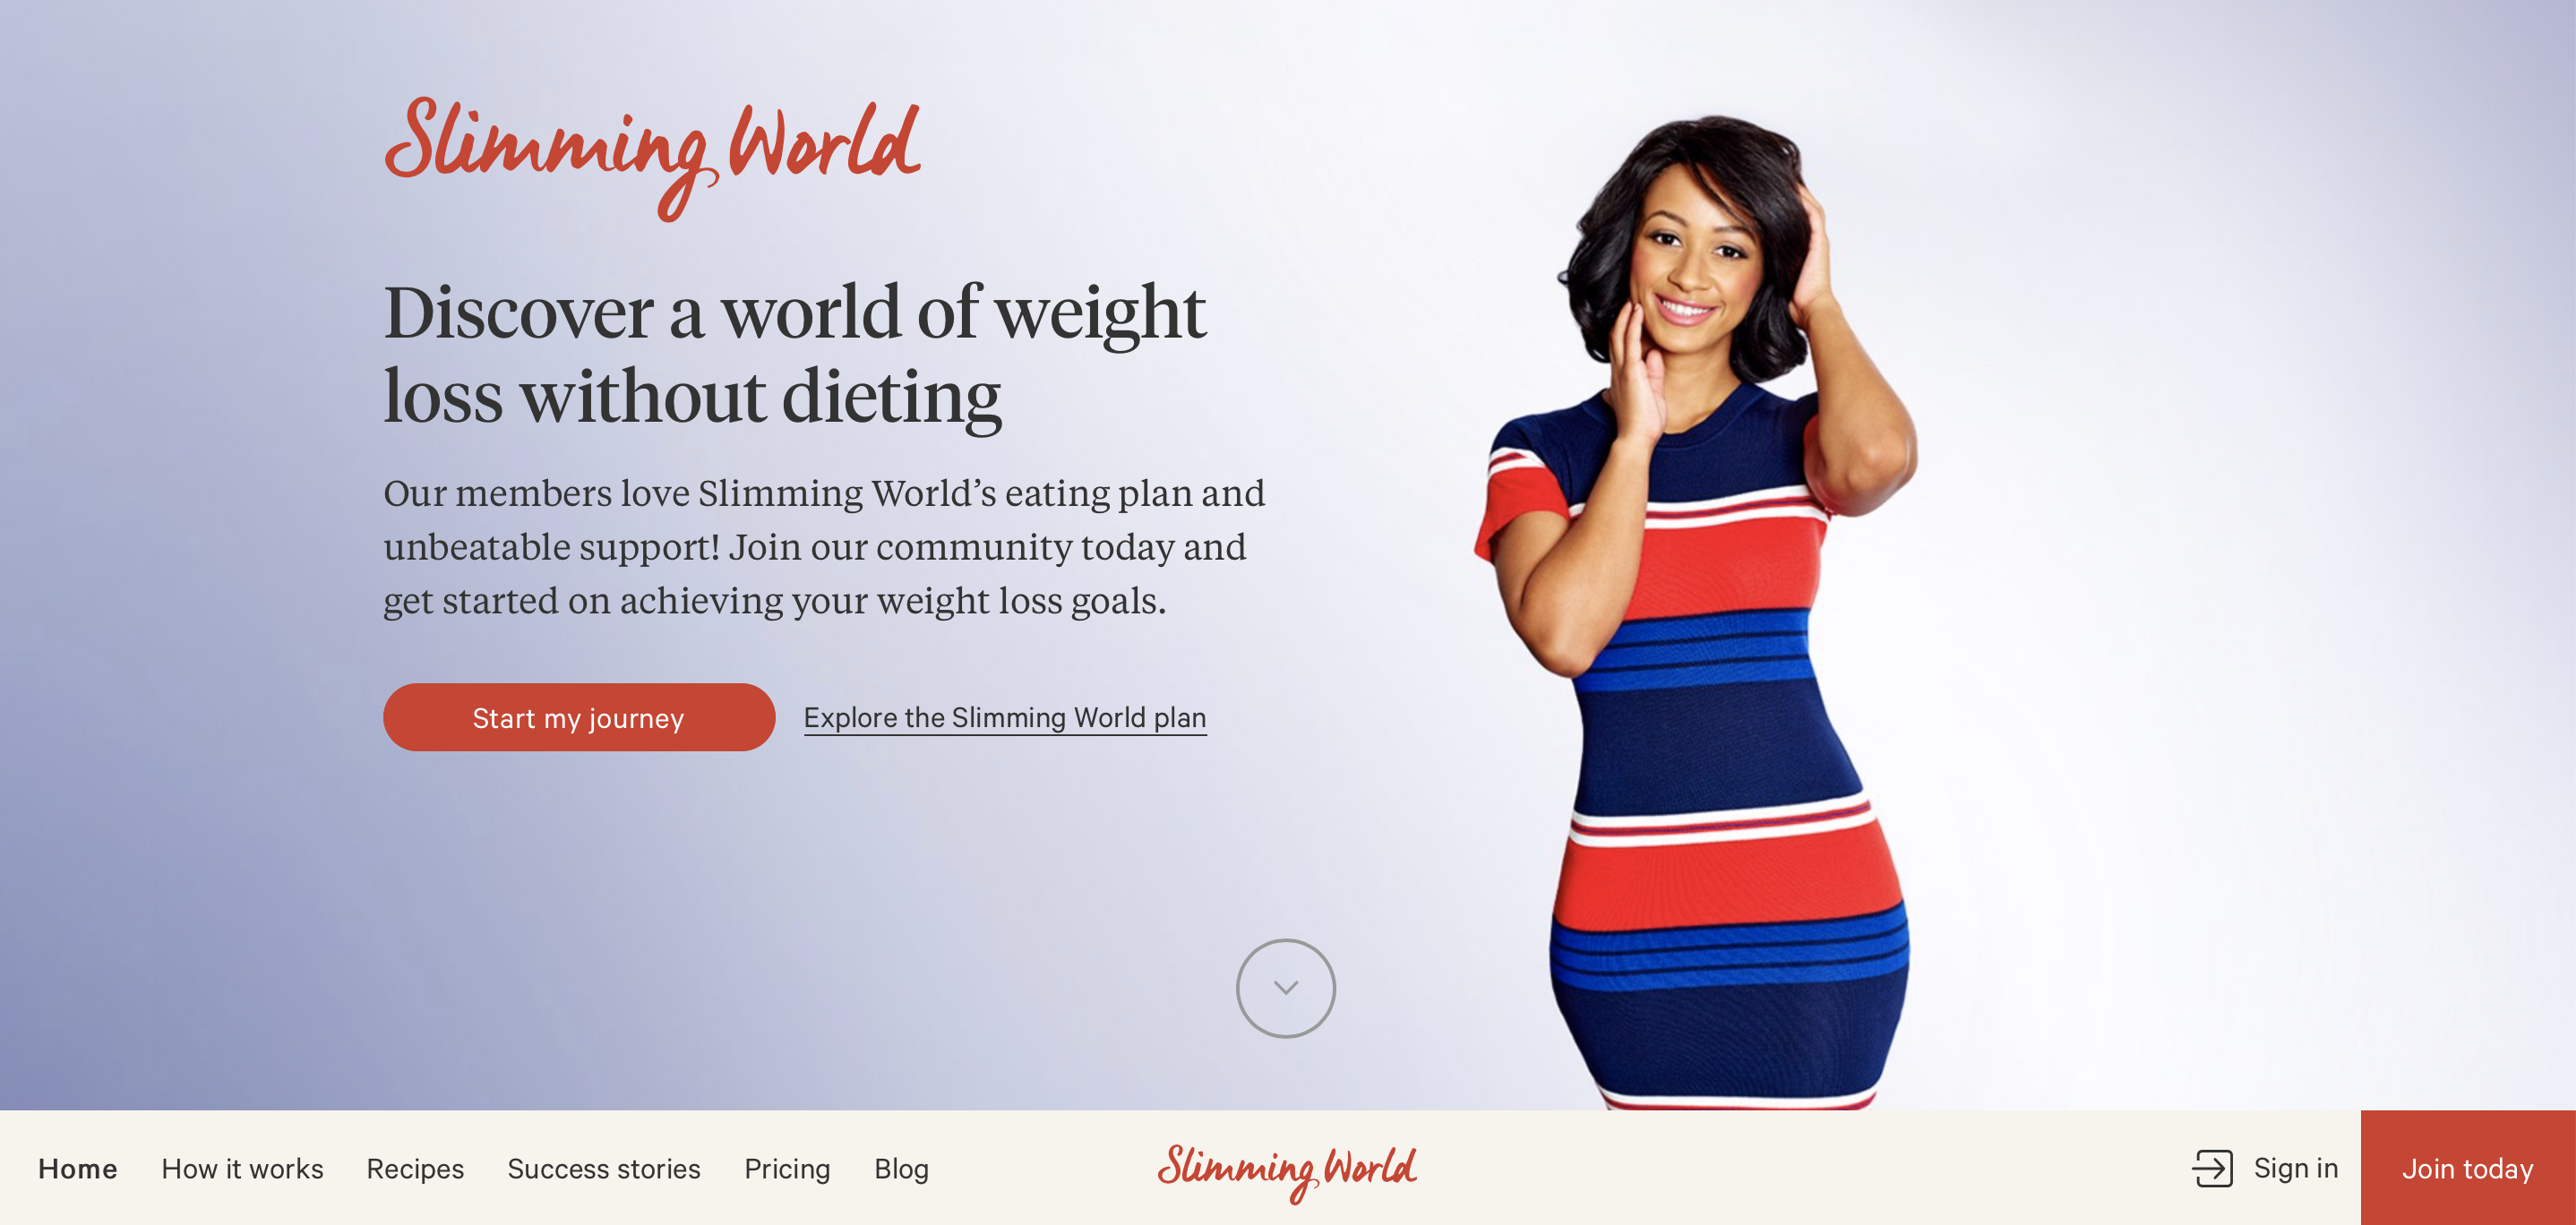 Image of Slimming World USA log in screen